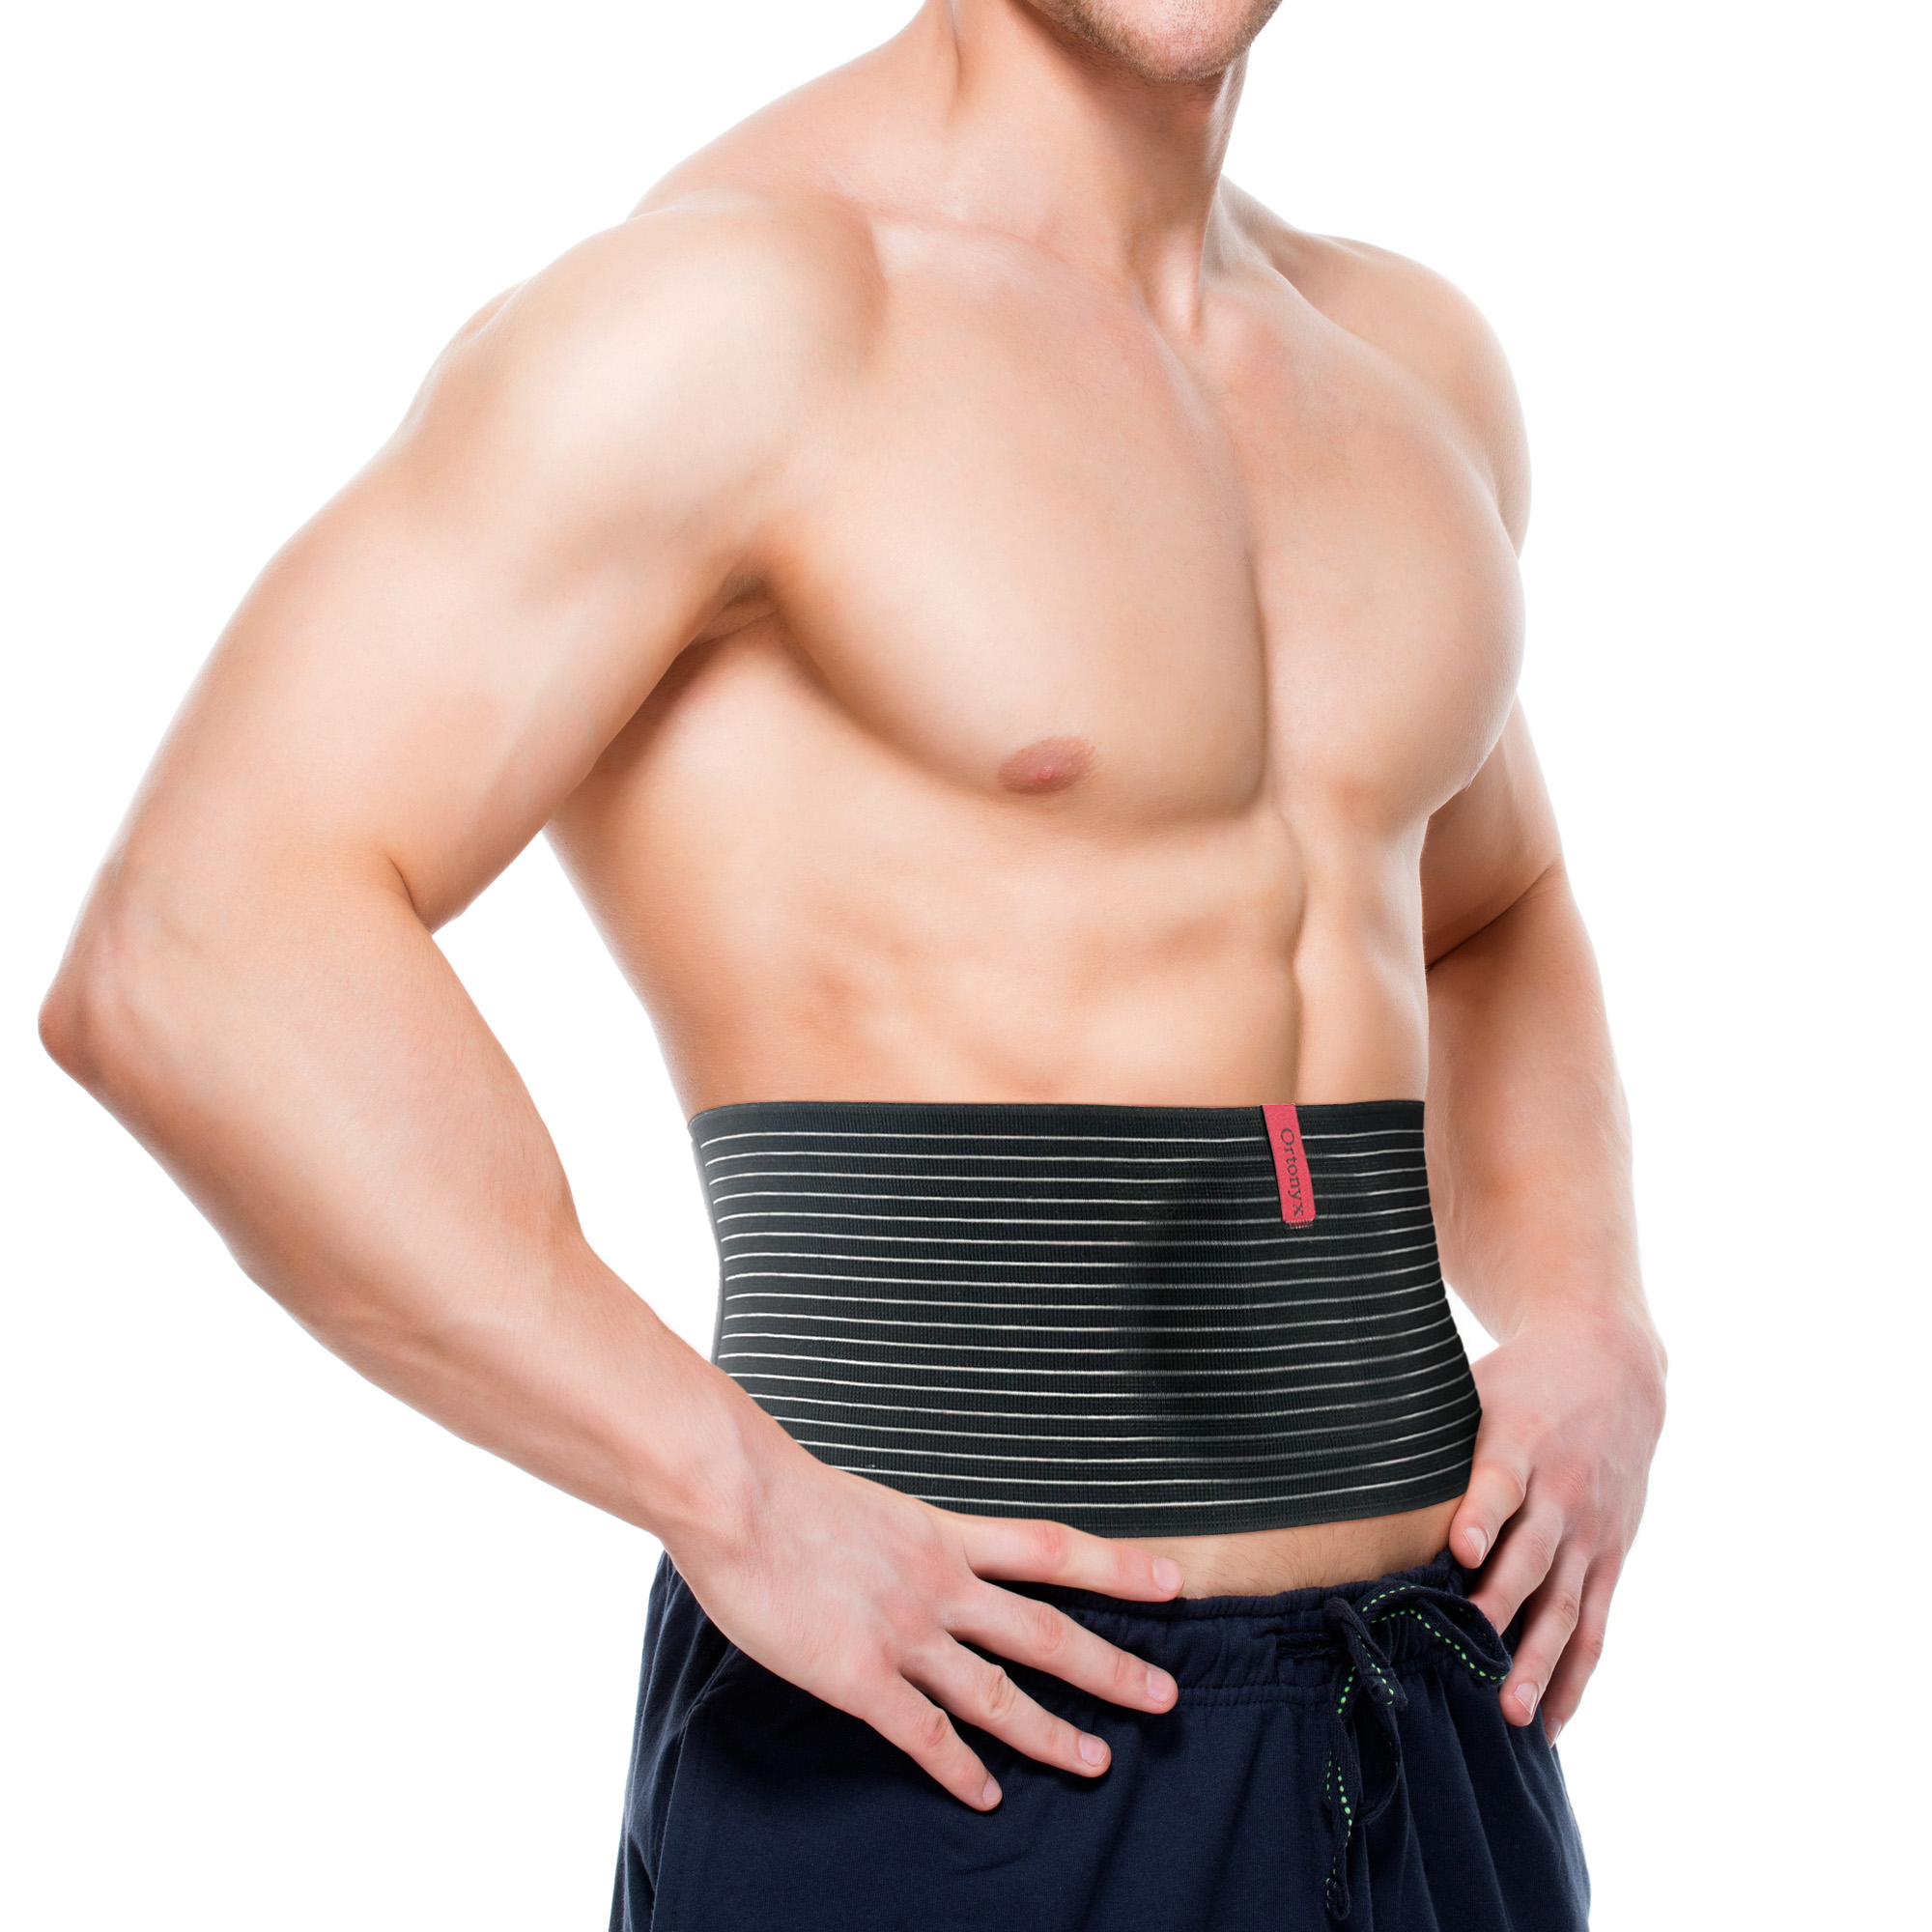 ORTONYX Umbilical Hernia Belt   Abdominal Binder Support Binder by UFEELGOOD